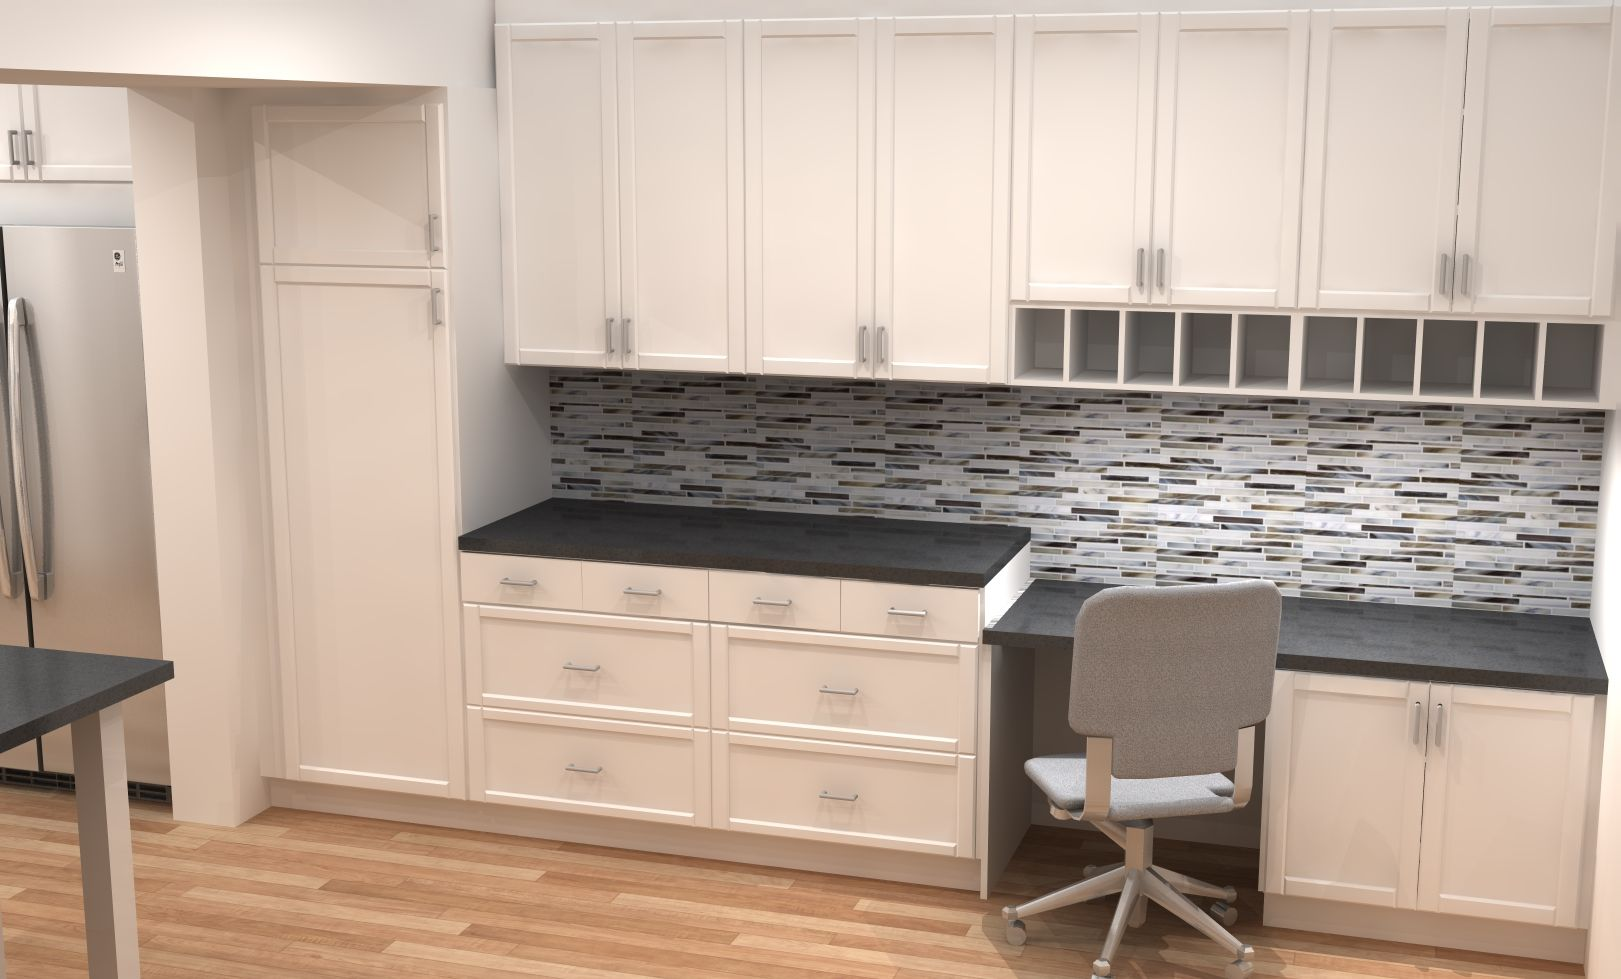 Small Kitchen Remodel With Ikea Cabinets Ikea Kitchen Design Kitchen Cabinets On A Budget Kitchen Remodel Small